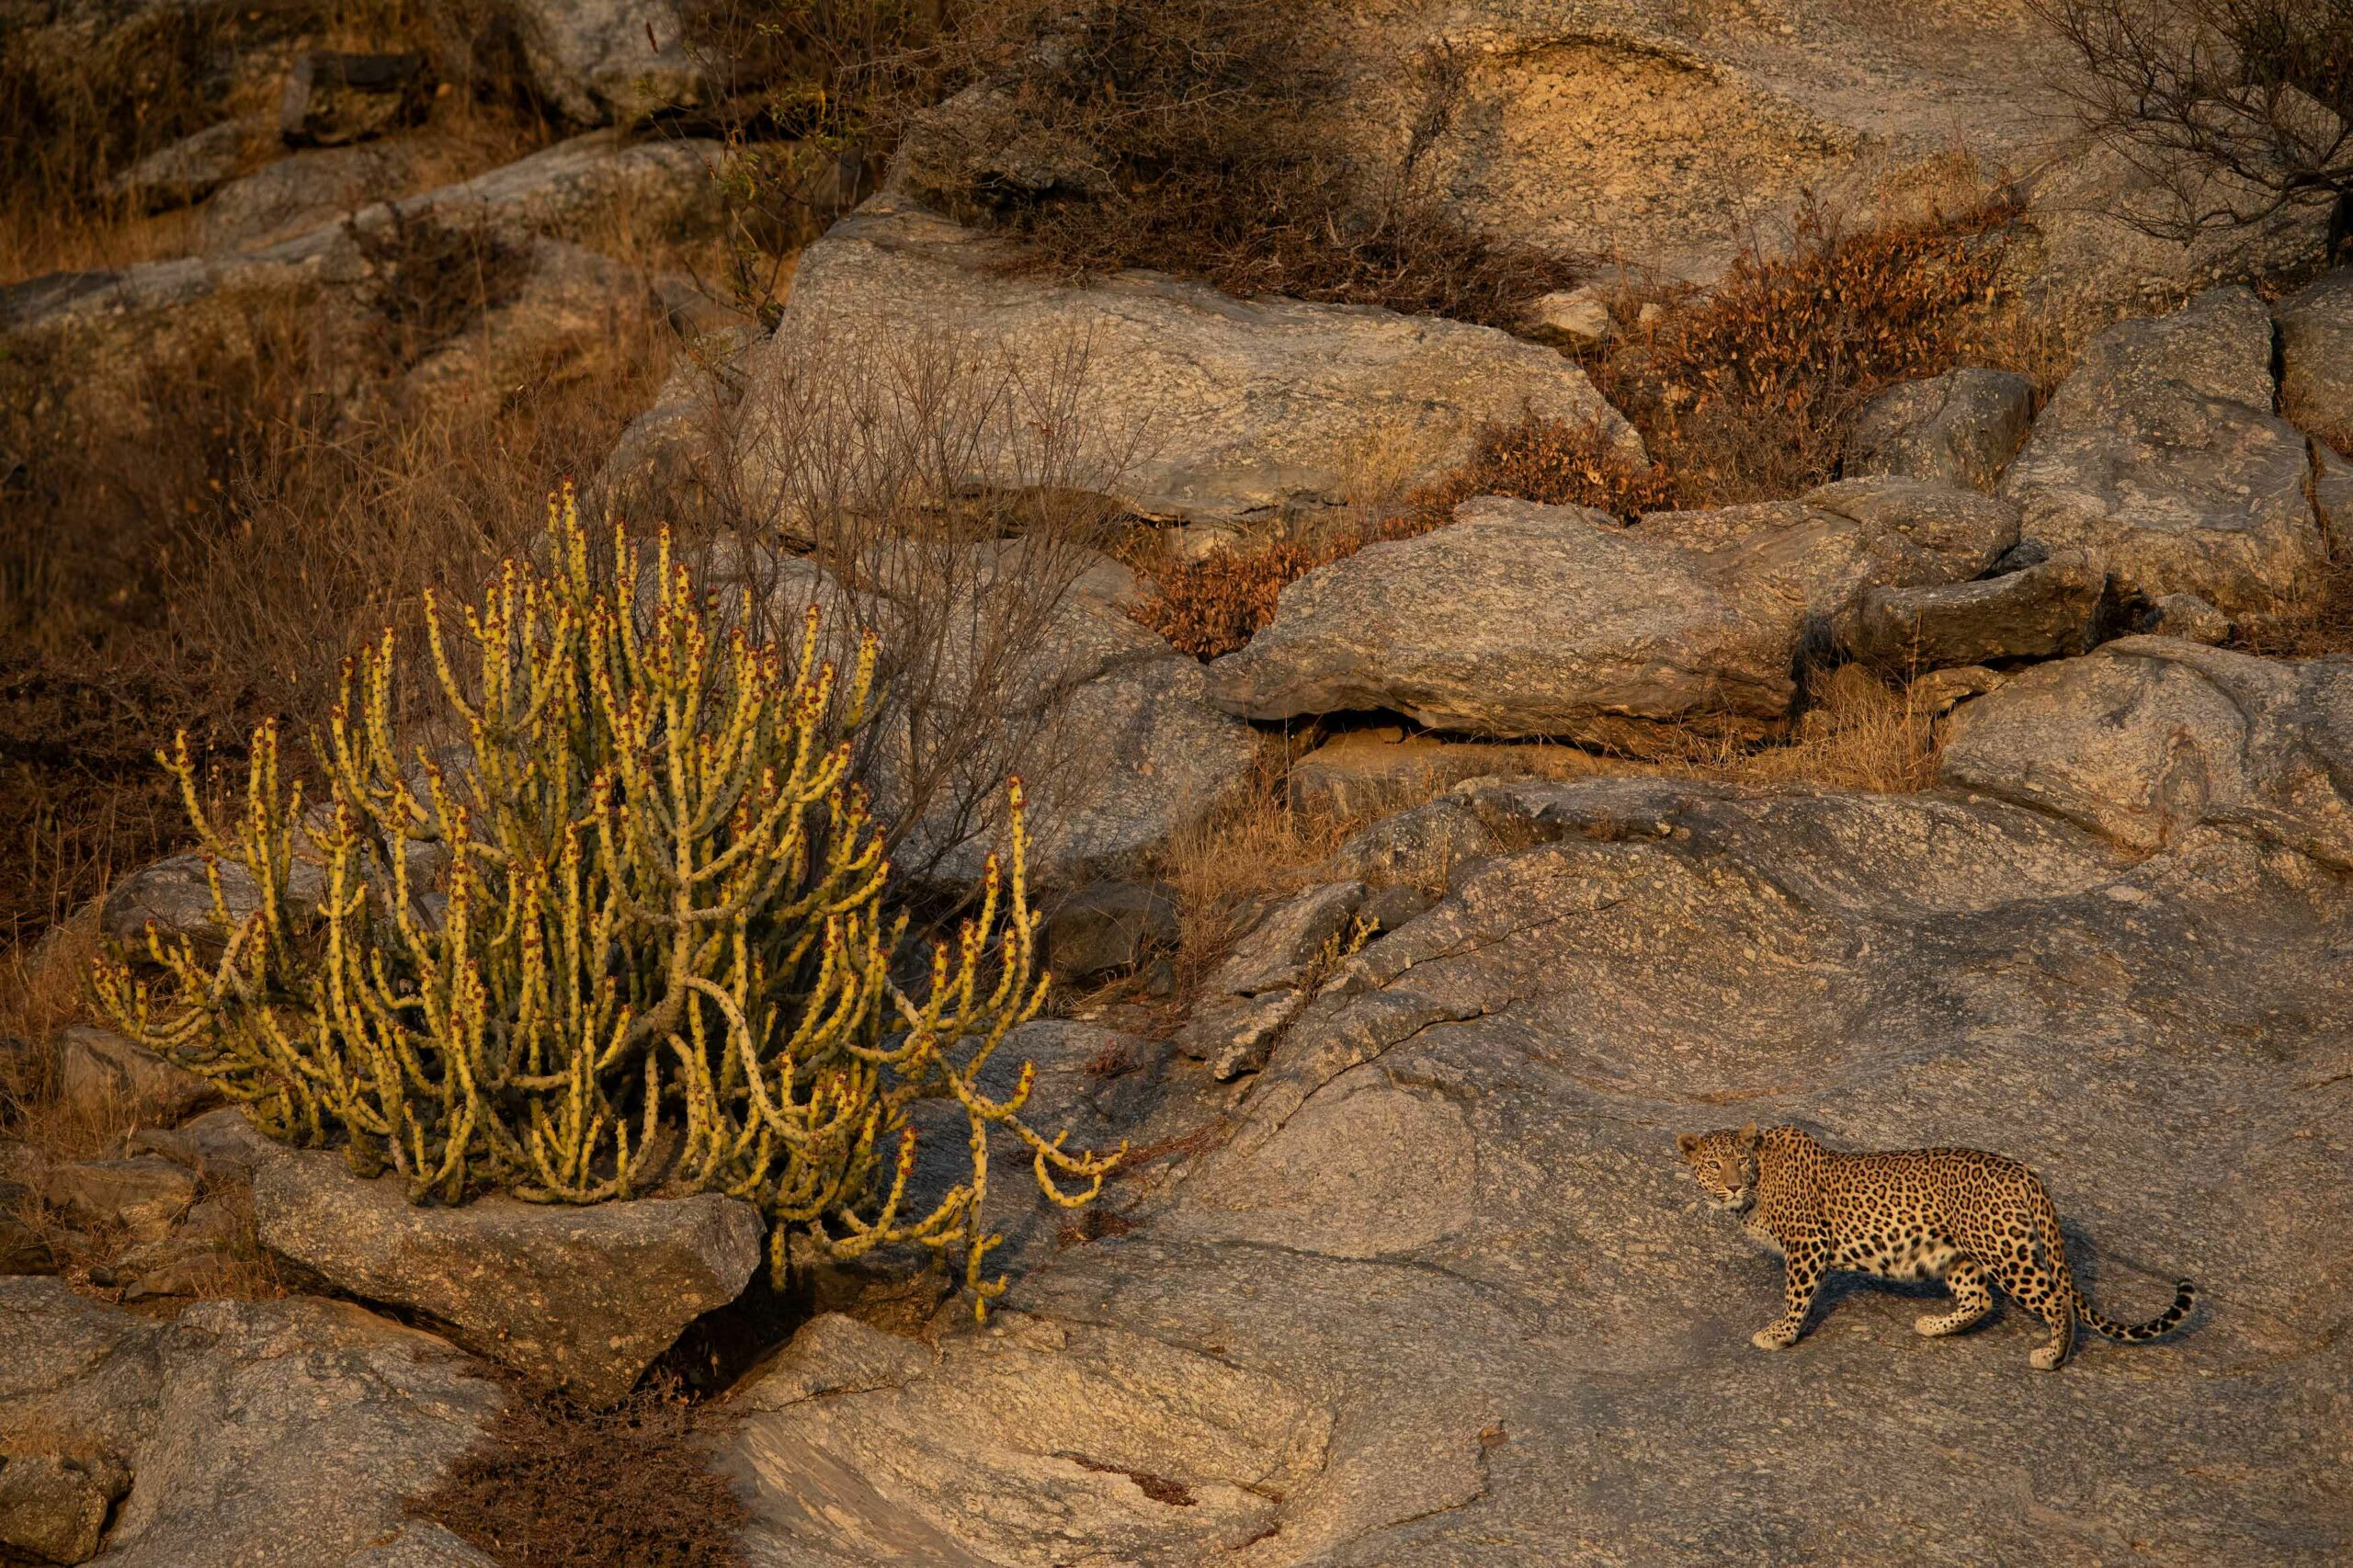 The rockier parts of the Aravallis are ideal for leopards, but spotting one is difficult unless you are in Jawai Bandh aka Leopard Country. What makes the big cats in this part of Rajasthan so special is that they allow themselves to be seen frequently — from hilltops to near village temples —  a rare phenomenon for a predator that lives largely in stealth mode. Photo: Shivang Mehta